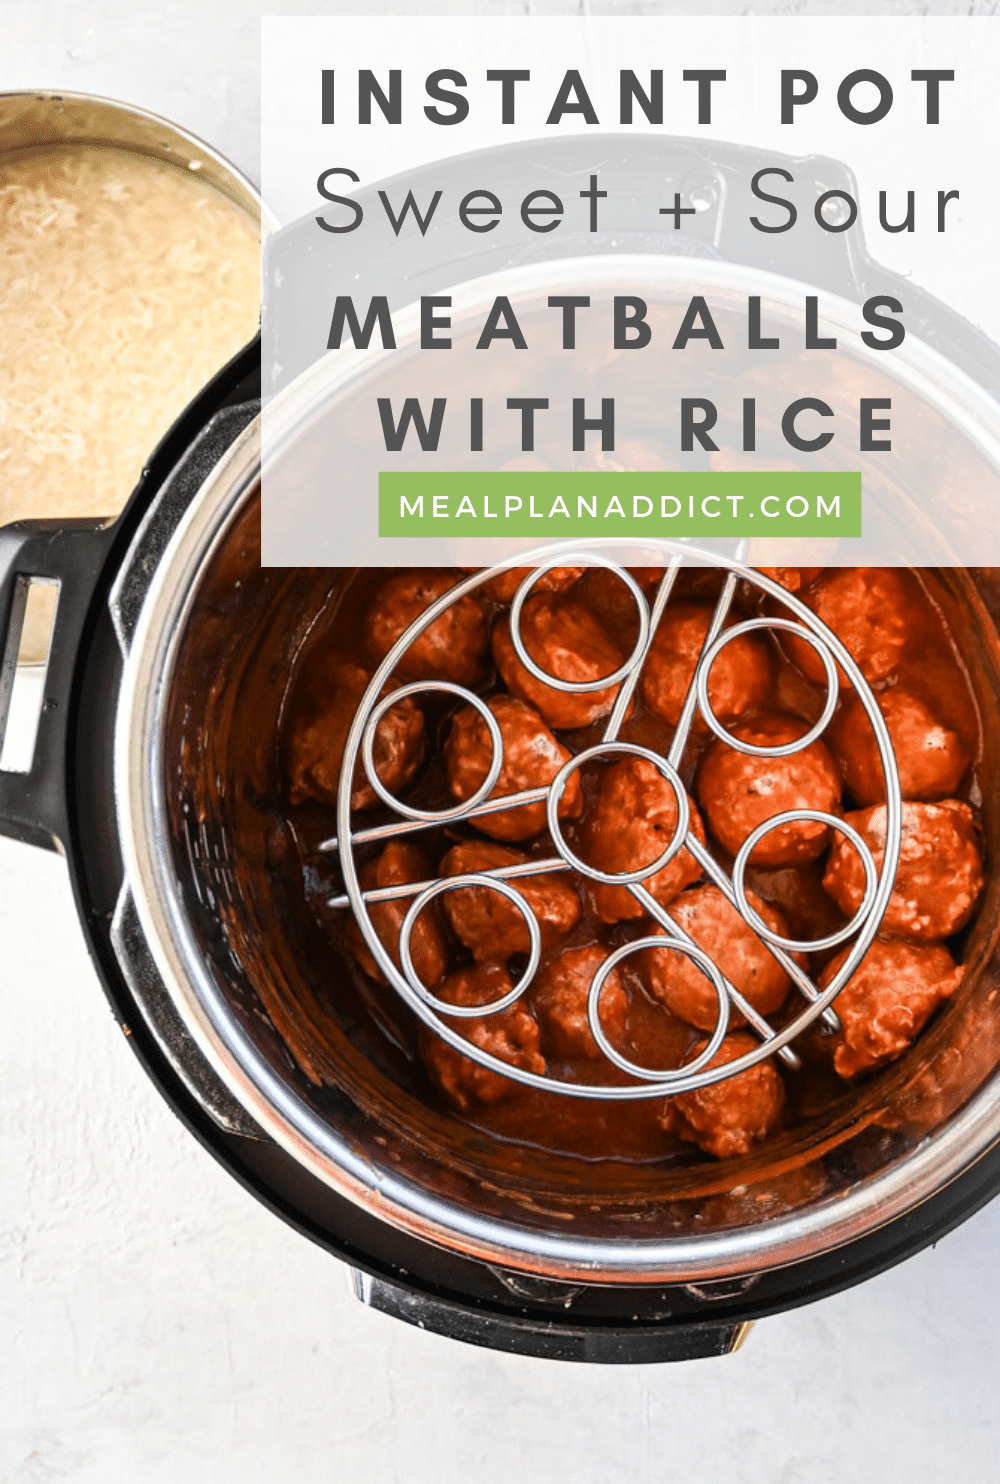 Meatballs with rice pin for Pinterest